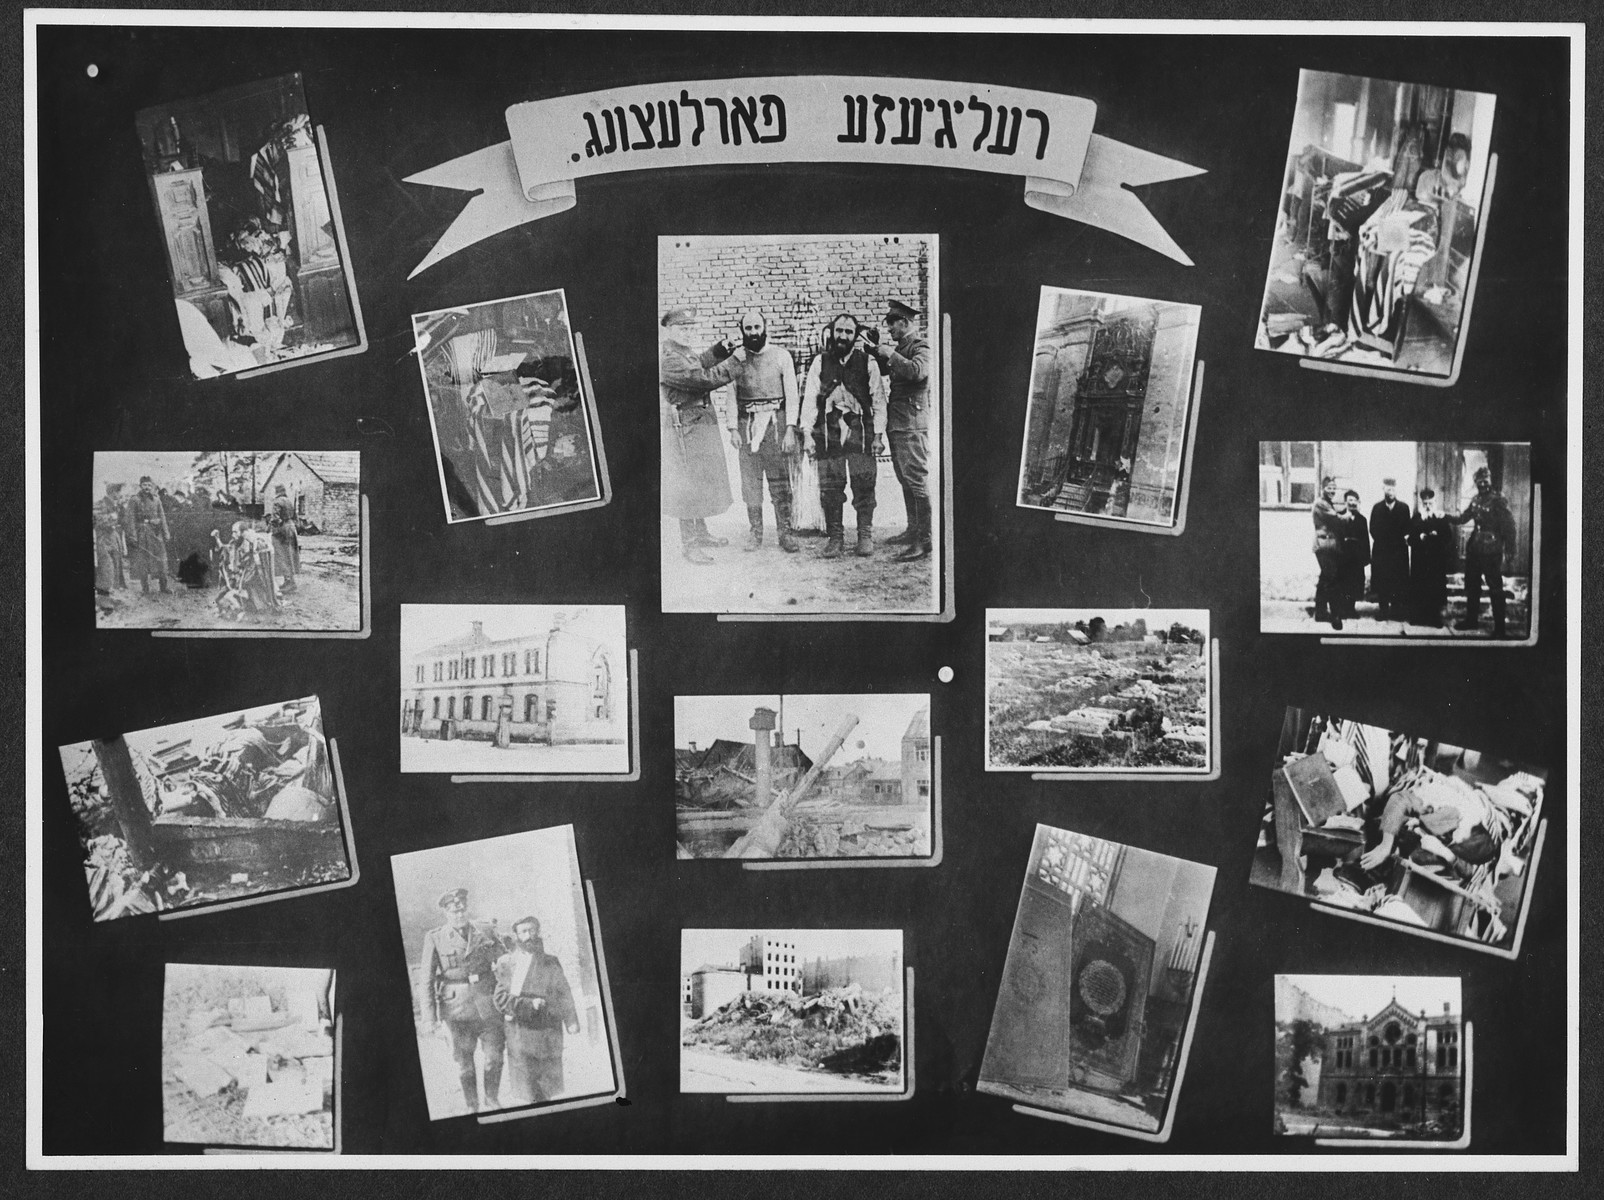 """Display panel from a photo exhibition on the Holocaust entitled, """"Destruction of Religion"""" created by photographer George Kaddish in a displaced persons' camp.  The exhibition consisted both of photographs that he shot in the Kovno ghetto as well as other photographs he collected from other ghettos and camps."""